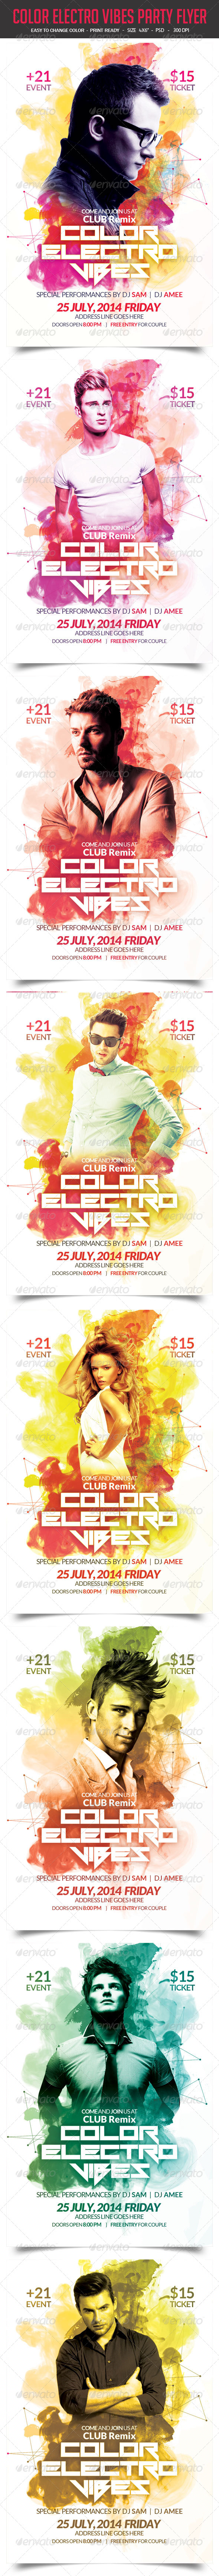 GraphicRiver Color Electro Vibes Party Flyer 8626531